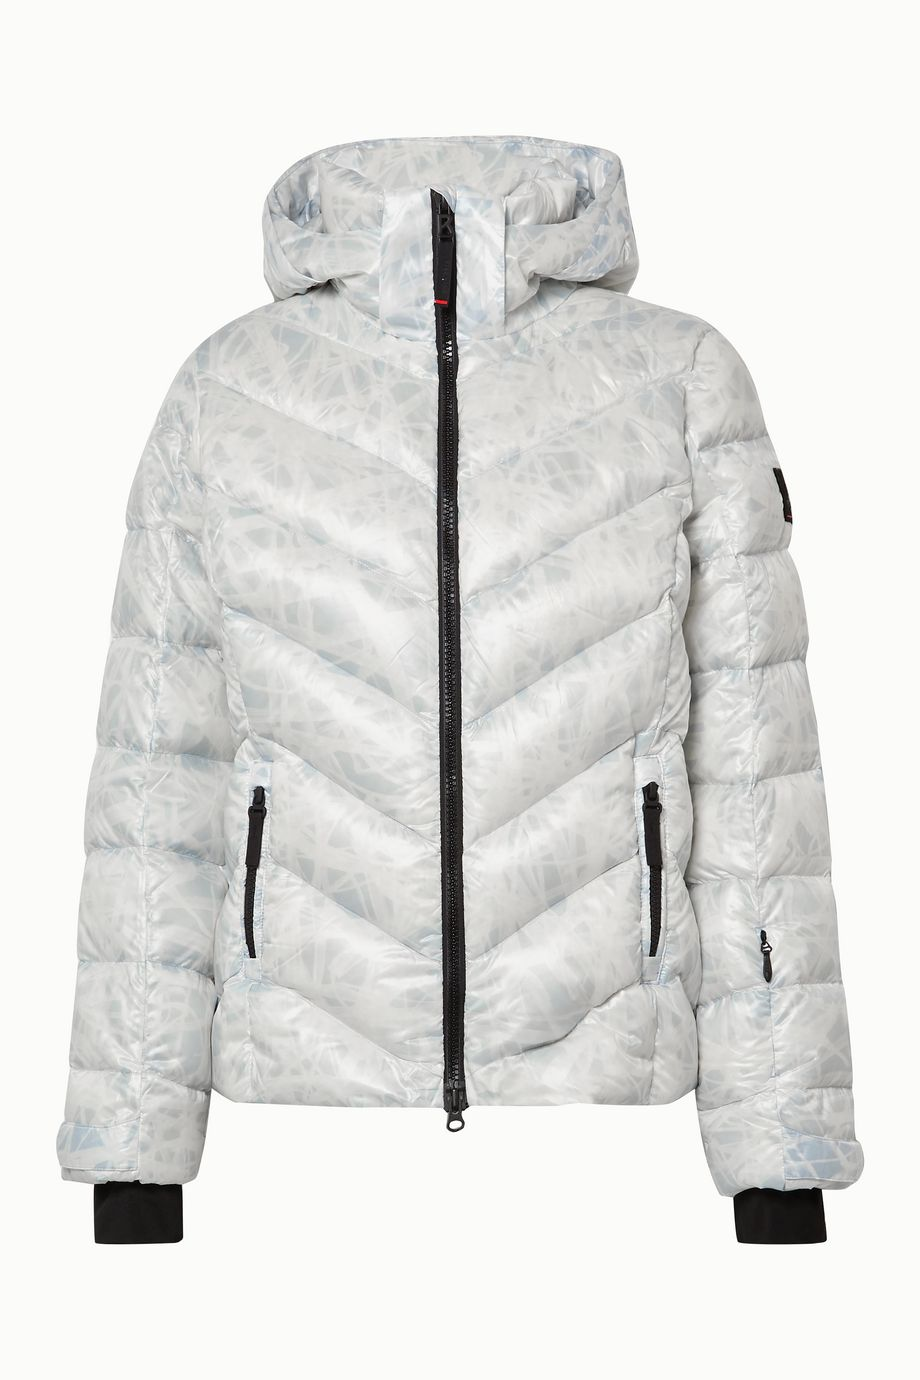 BOGNER FIRE+ICE Sassy2 hooded printed quilted down ski jacket